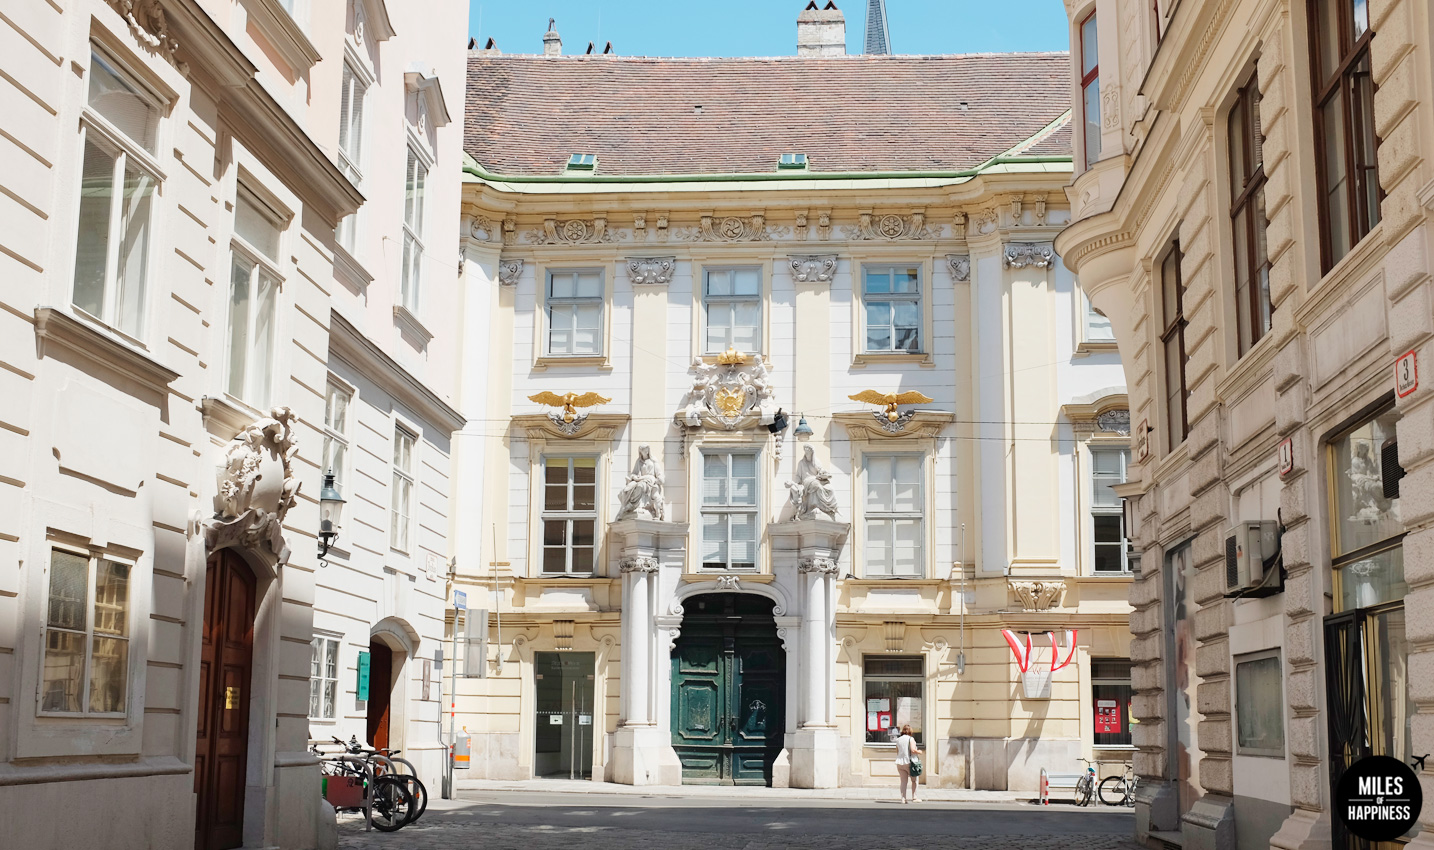 Our Austrian Stopover : How to spend 8 hours in Vienna?